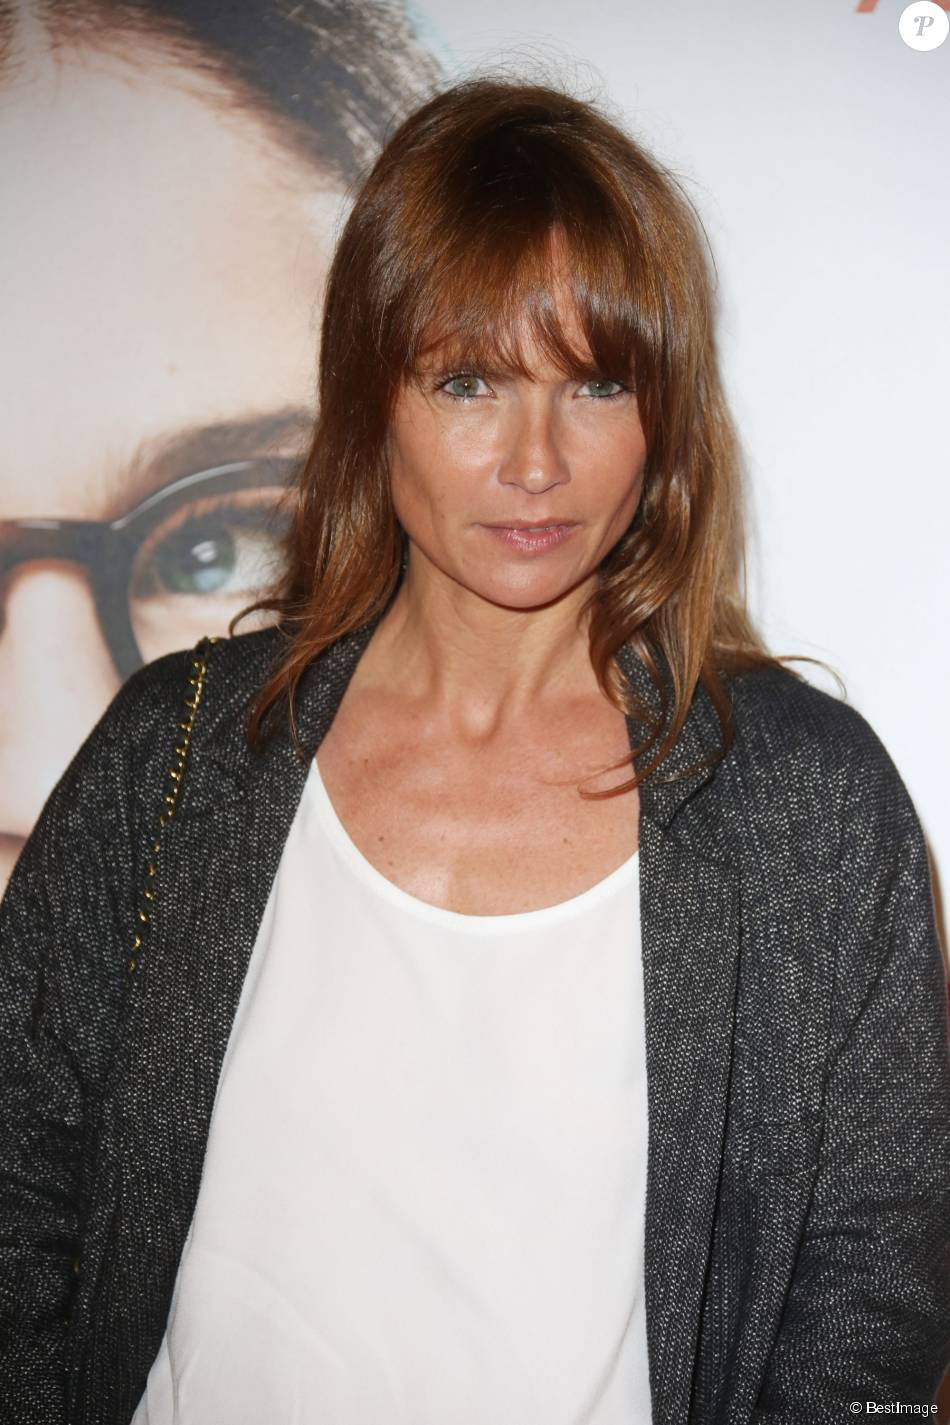 Axelle Laffont picture 47